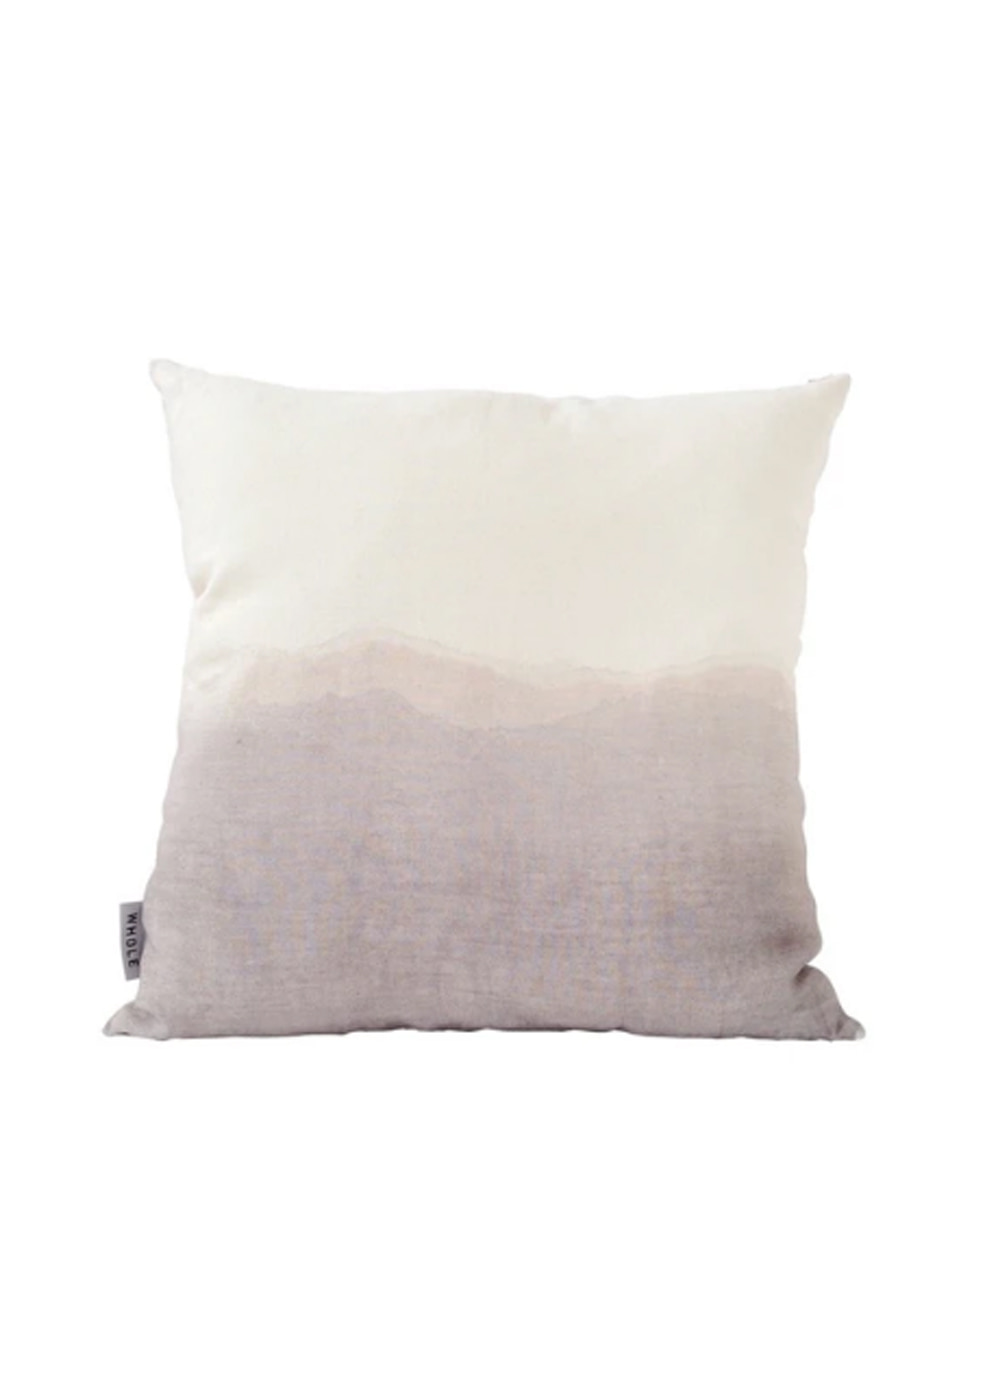 WOKI LINEN CUSHION COVER